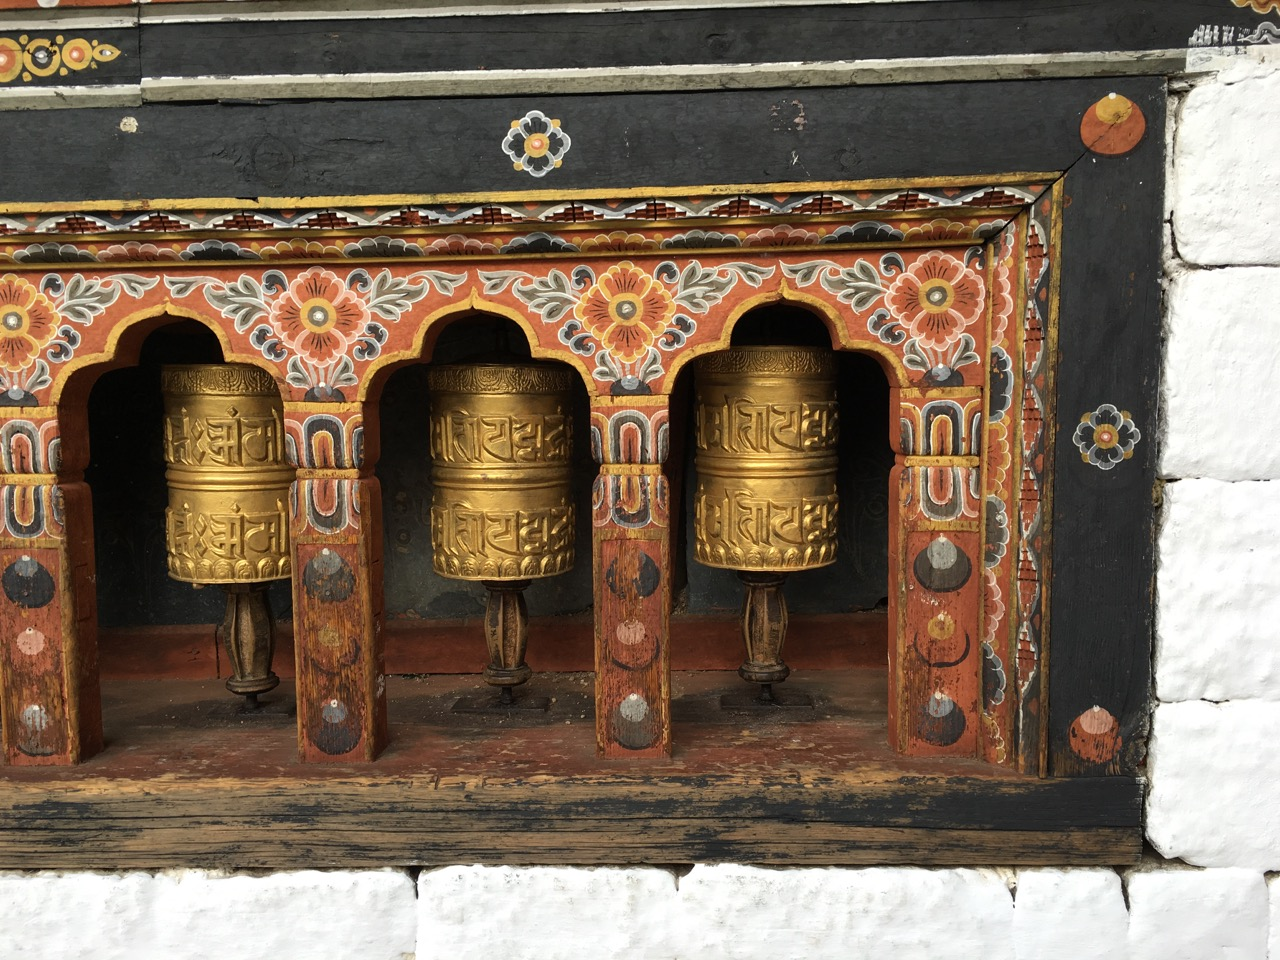 Prayer wheels. People turn these as they walk past to reveal all of the prayer written on them. The wheel often strike a bell as they are turned.